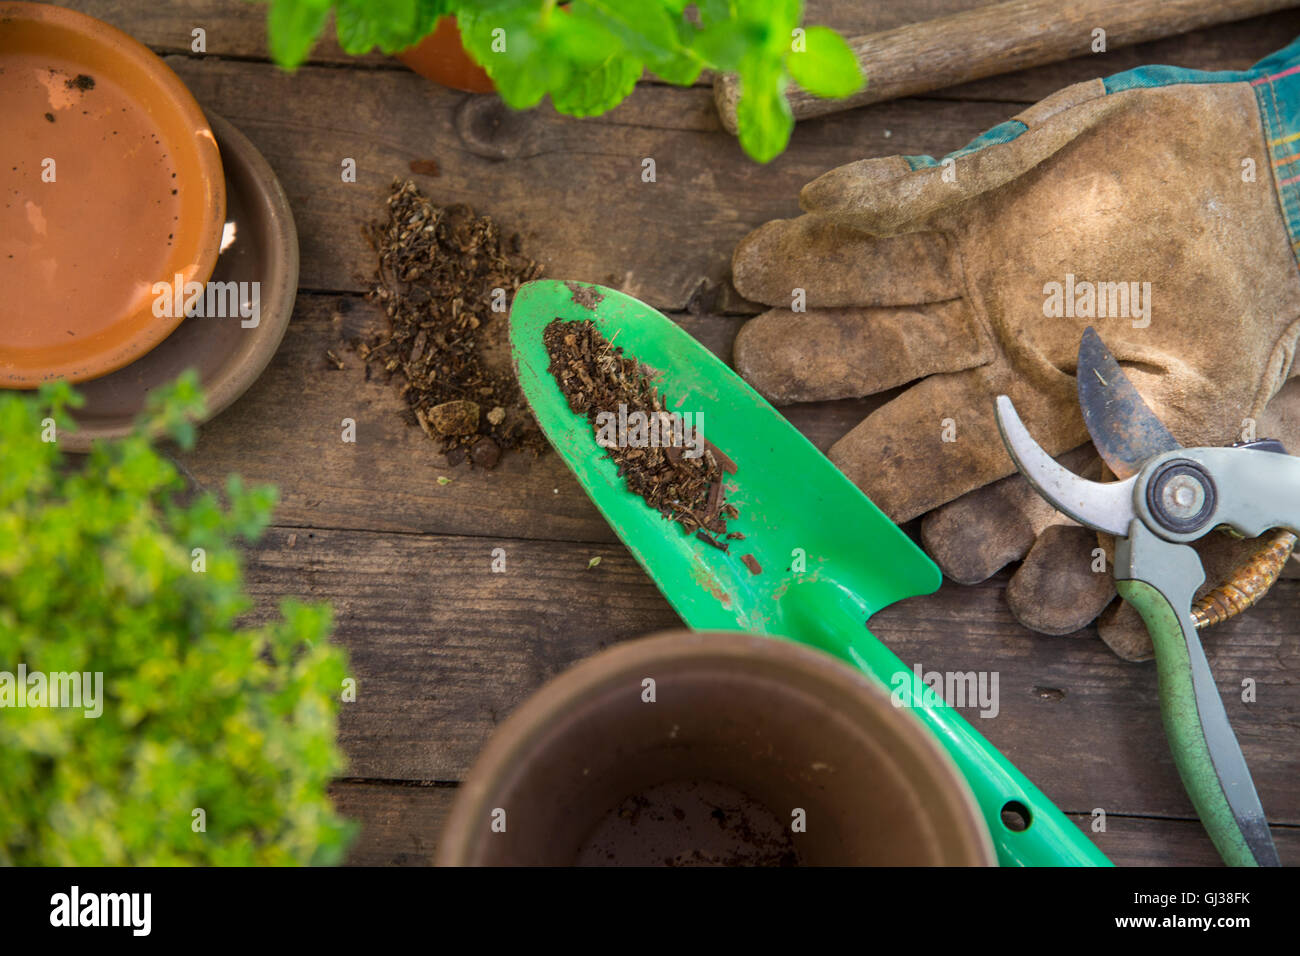 Overhead view of garden trowel and gloves on table - Stock Image